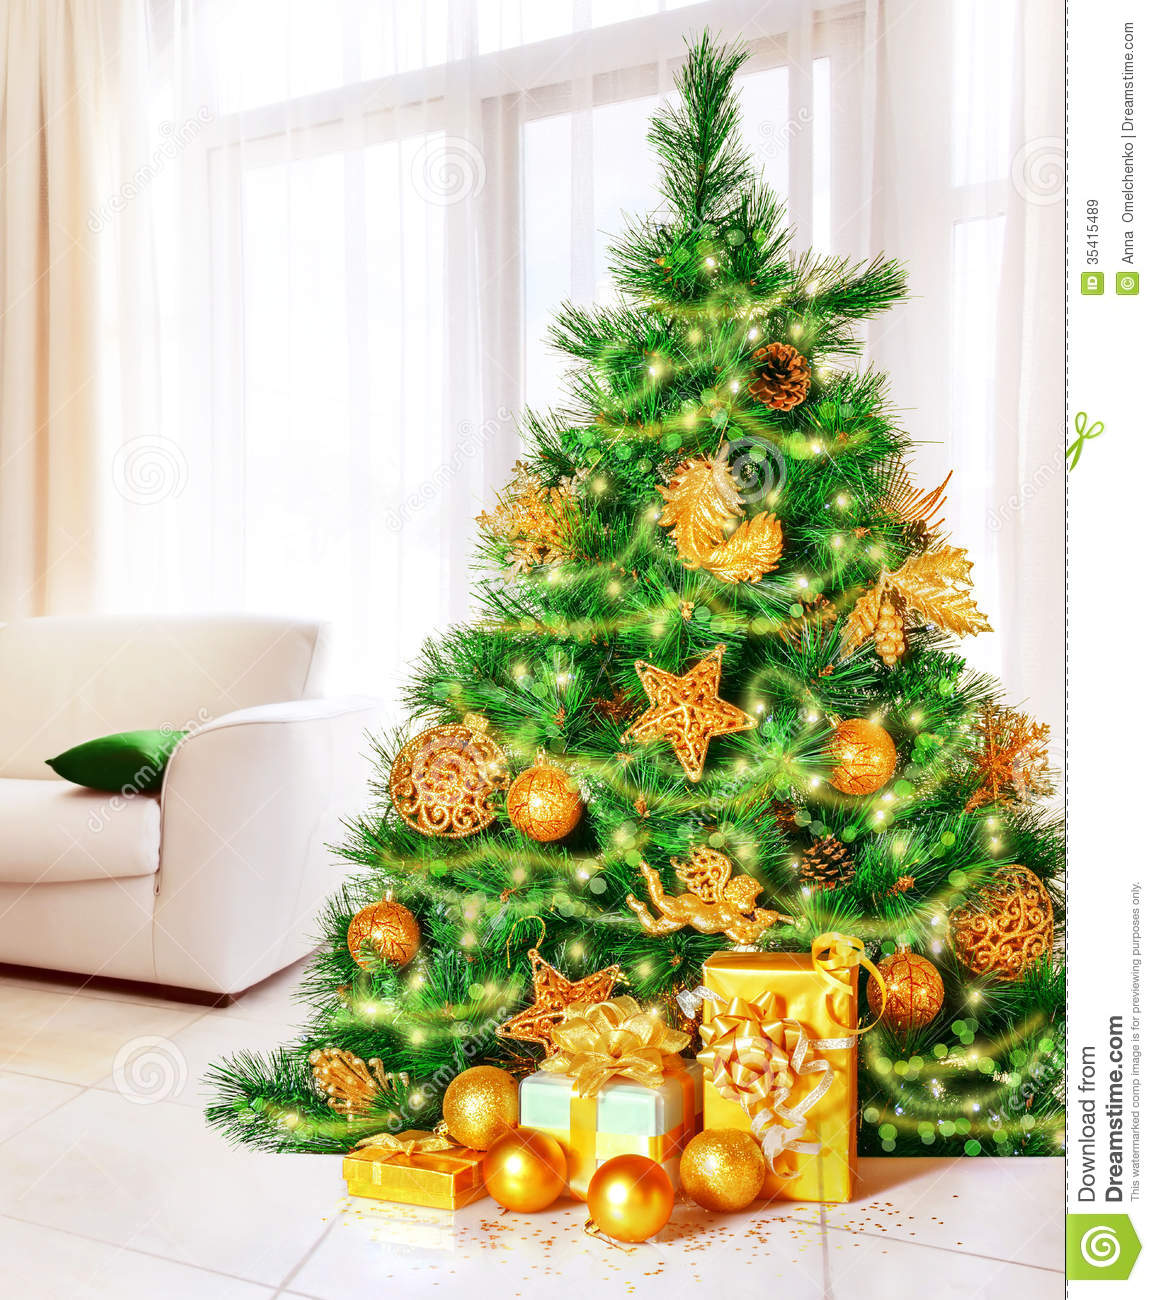 Traditional Gifts For New Homeowners Christmas Tree At Home Royalty Free Stock Images Image